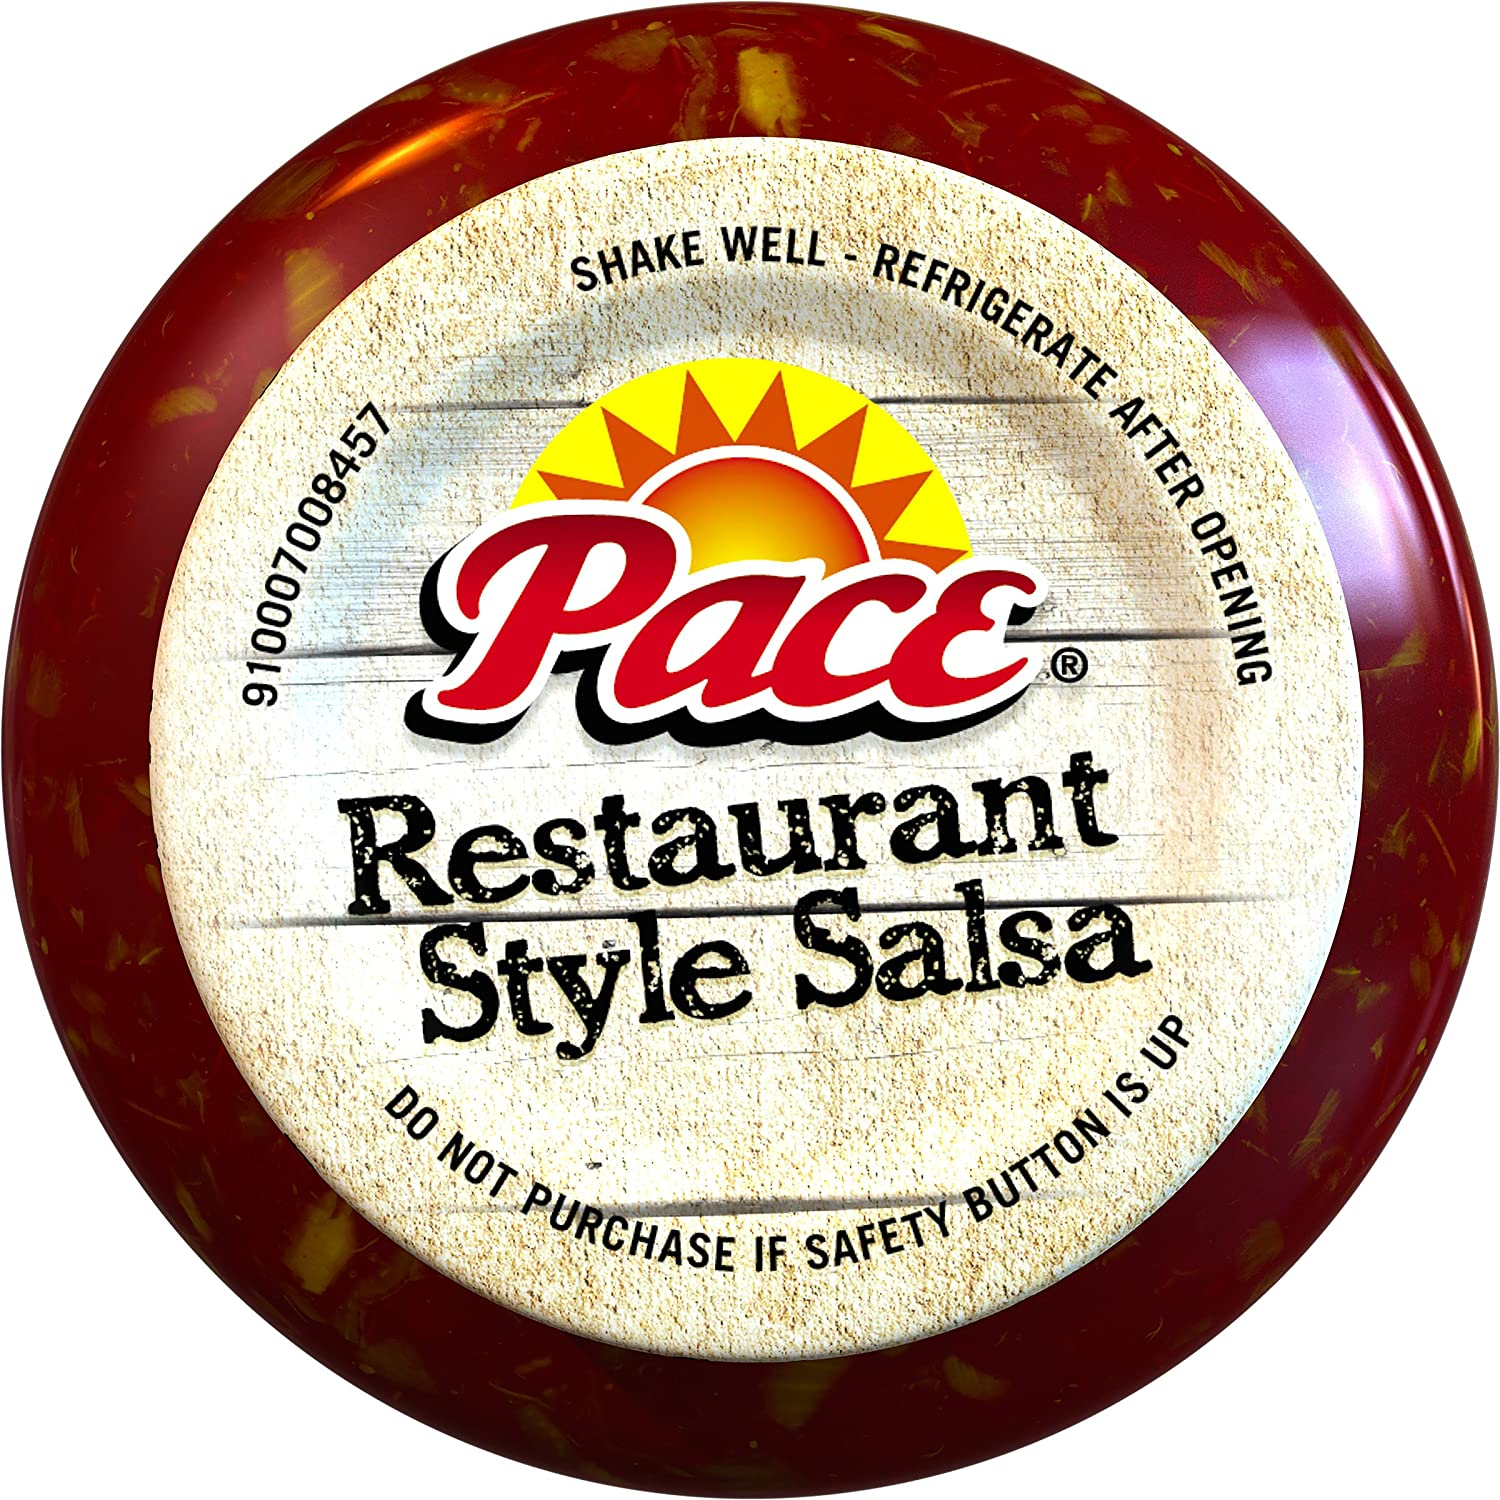 Amazon.com: Pace Restaurant Style Medium Salsa, Bourbon and Apple, 16 Ounce (Packaging May Vary)